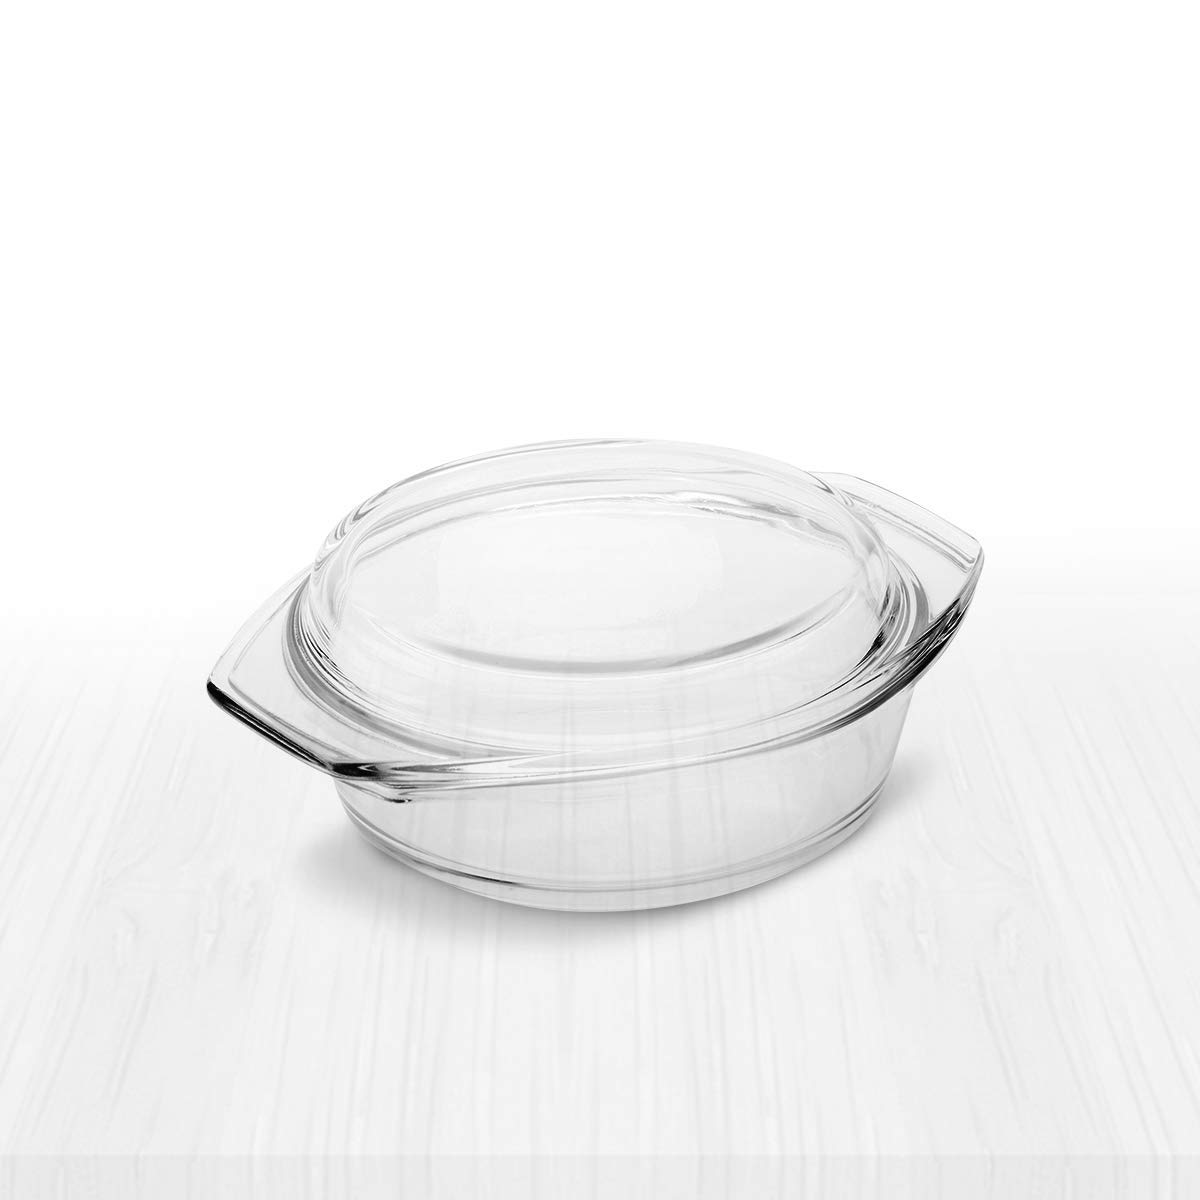 Clear Round Glass Casserole by Simax | With Lid, Heat, Cold and Shock Proof, Made in Europe, Oven, Freezer and Dishwasher Safe, 8 Inch by SIMAX